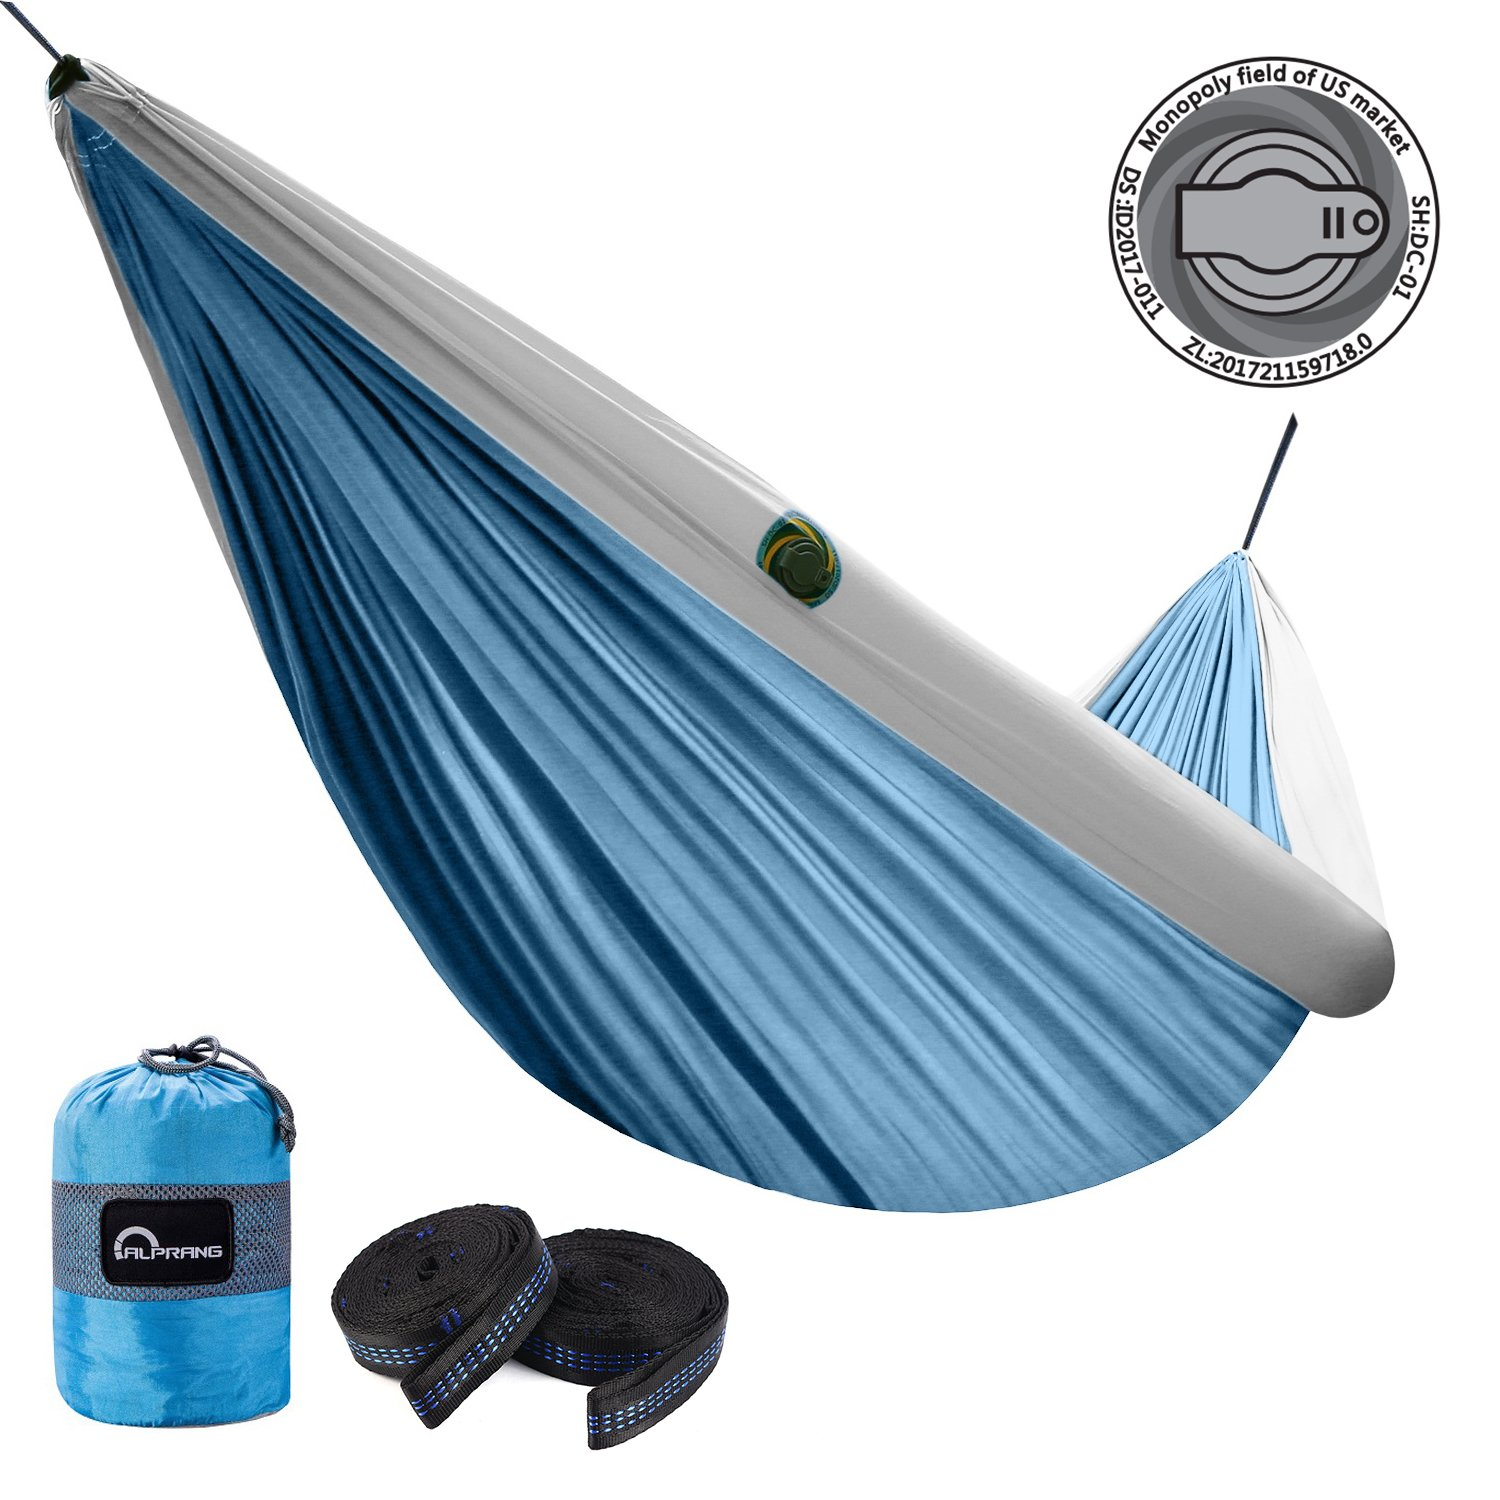 ALPRANG 2018 Upgrade Inflatable Hammock, Portable Foldable Nylon Hammock with Tree Hanging Straps- The Best Double Hammock for Camping, Hiking, Beach, Travel, Backpacking (Lake Blue) by ALPRANG